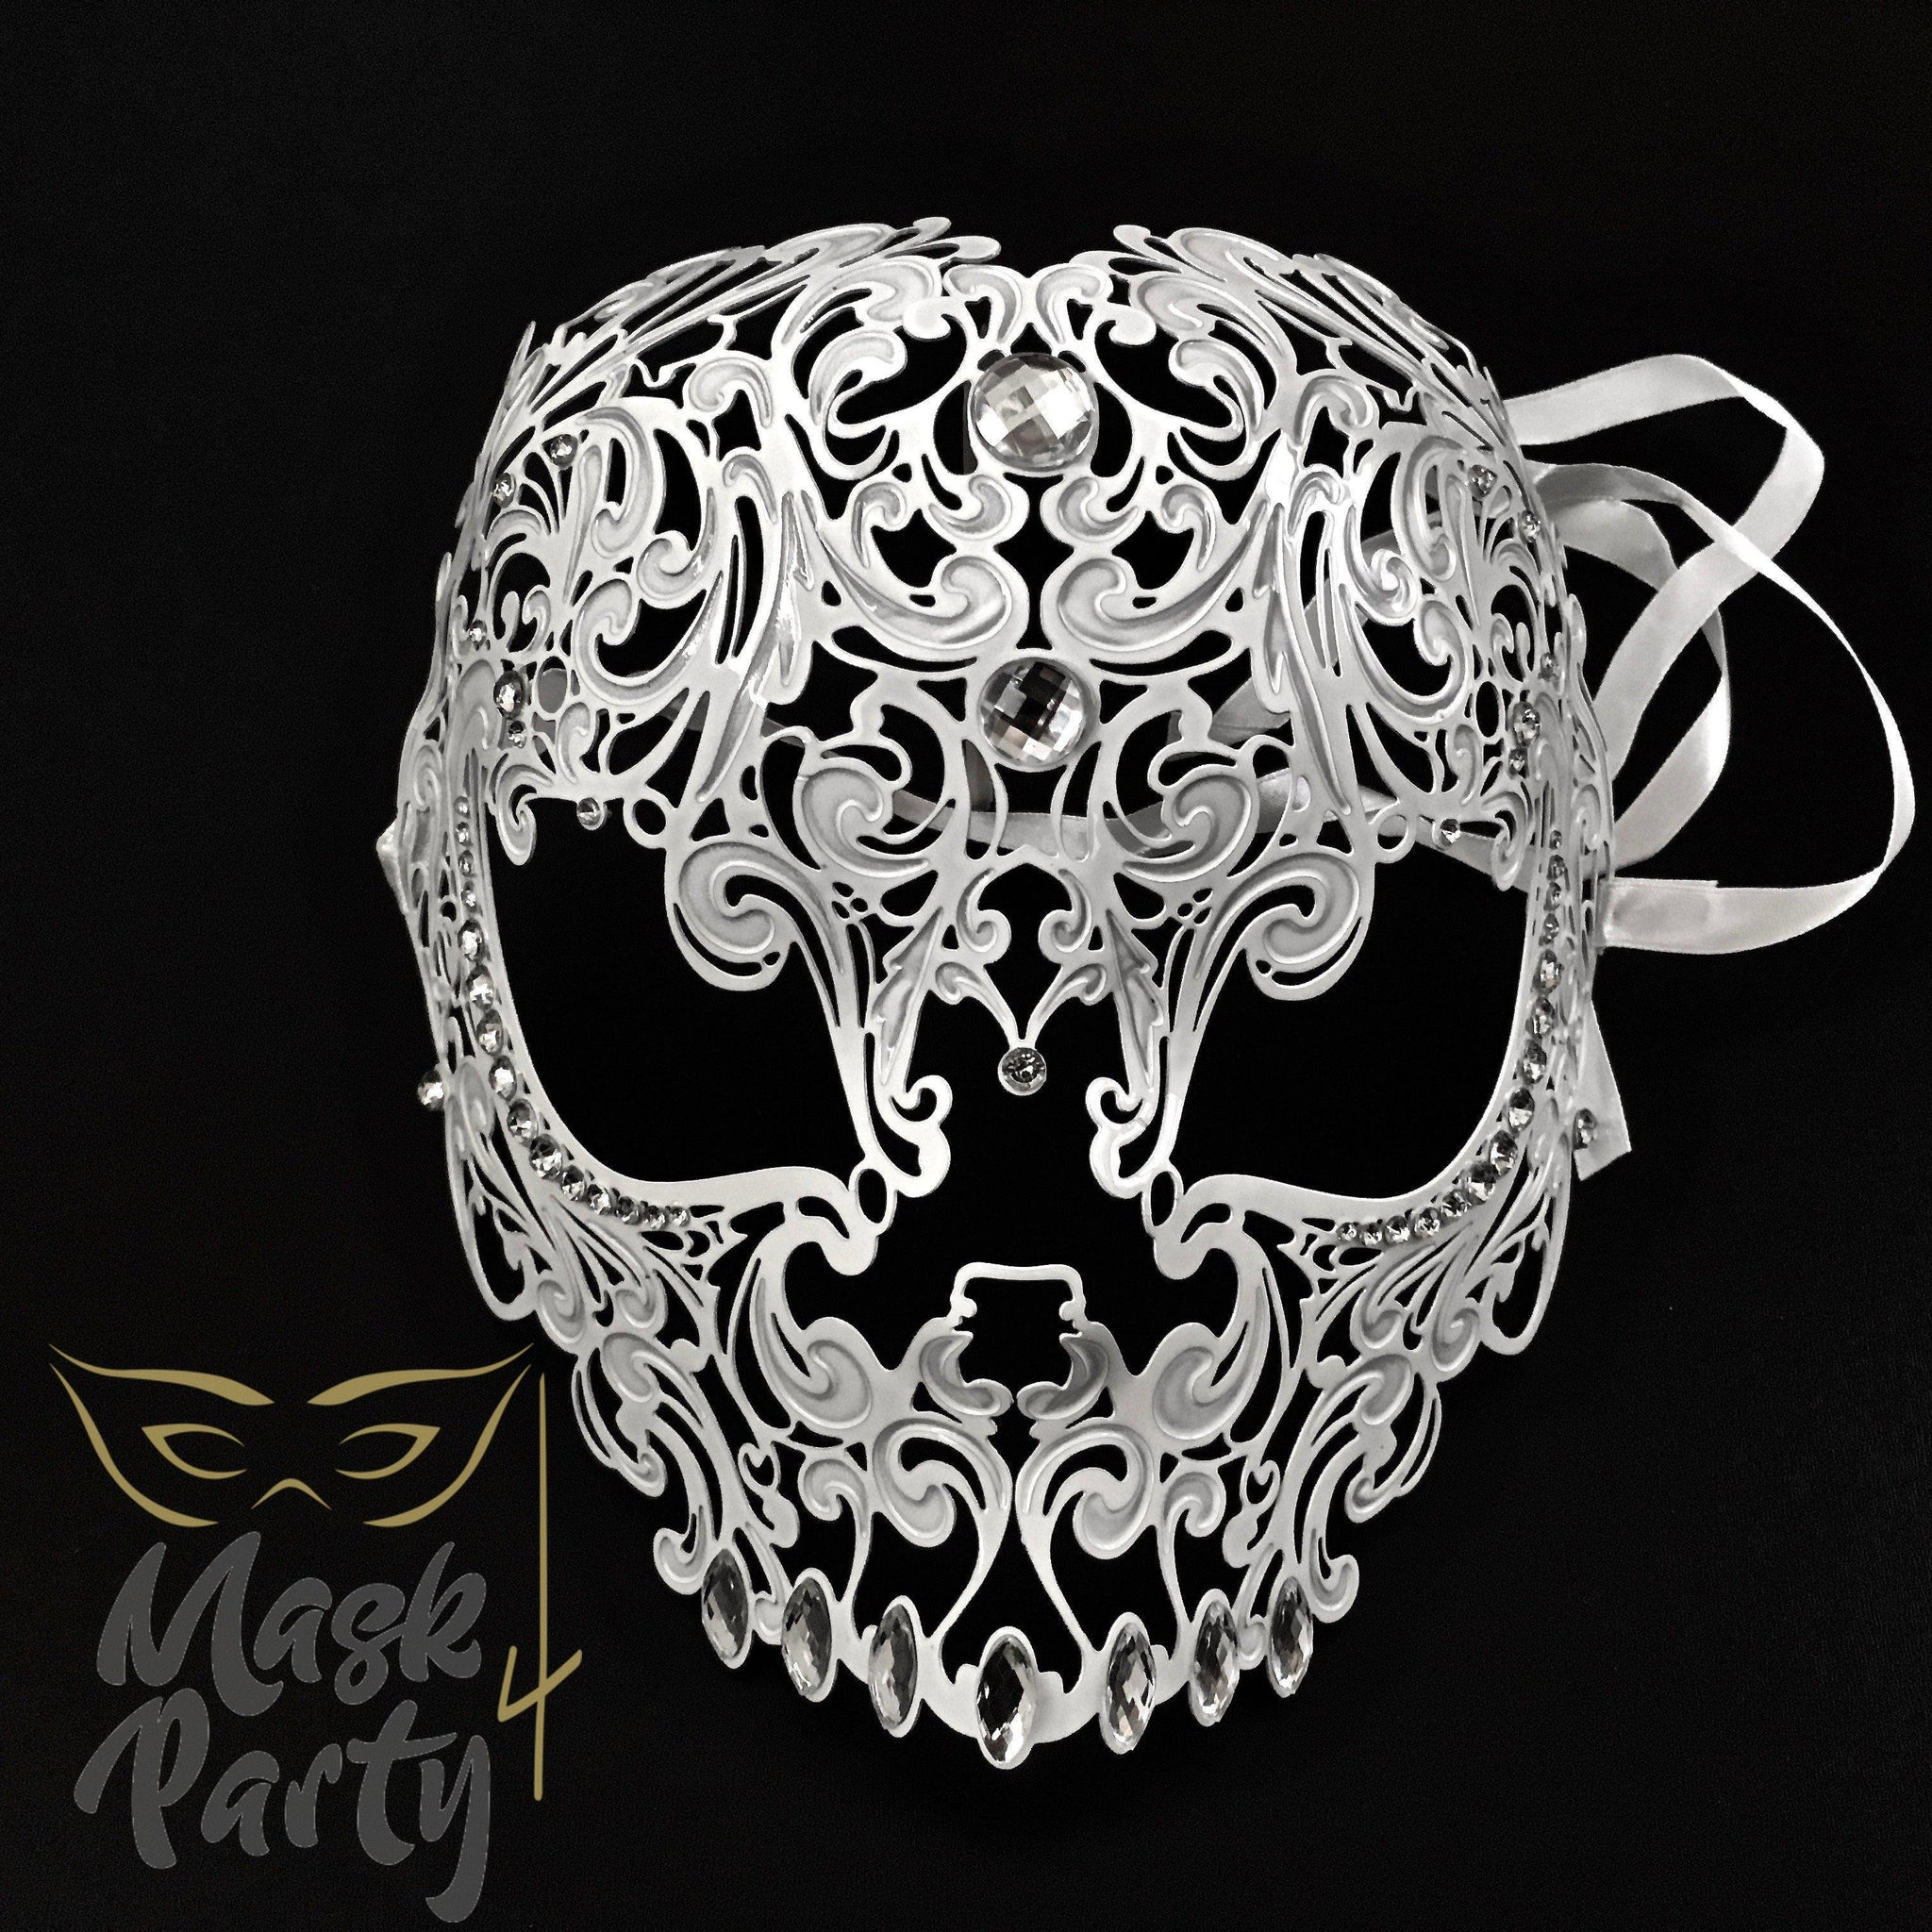 Masquerade Mask - Filigree Metal Skull Full Face - White - Mask4Party